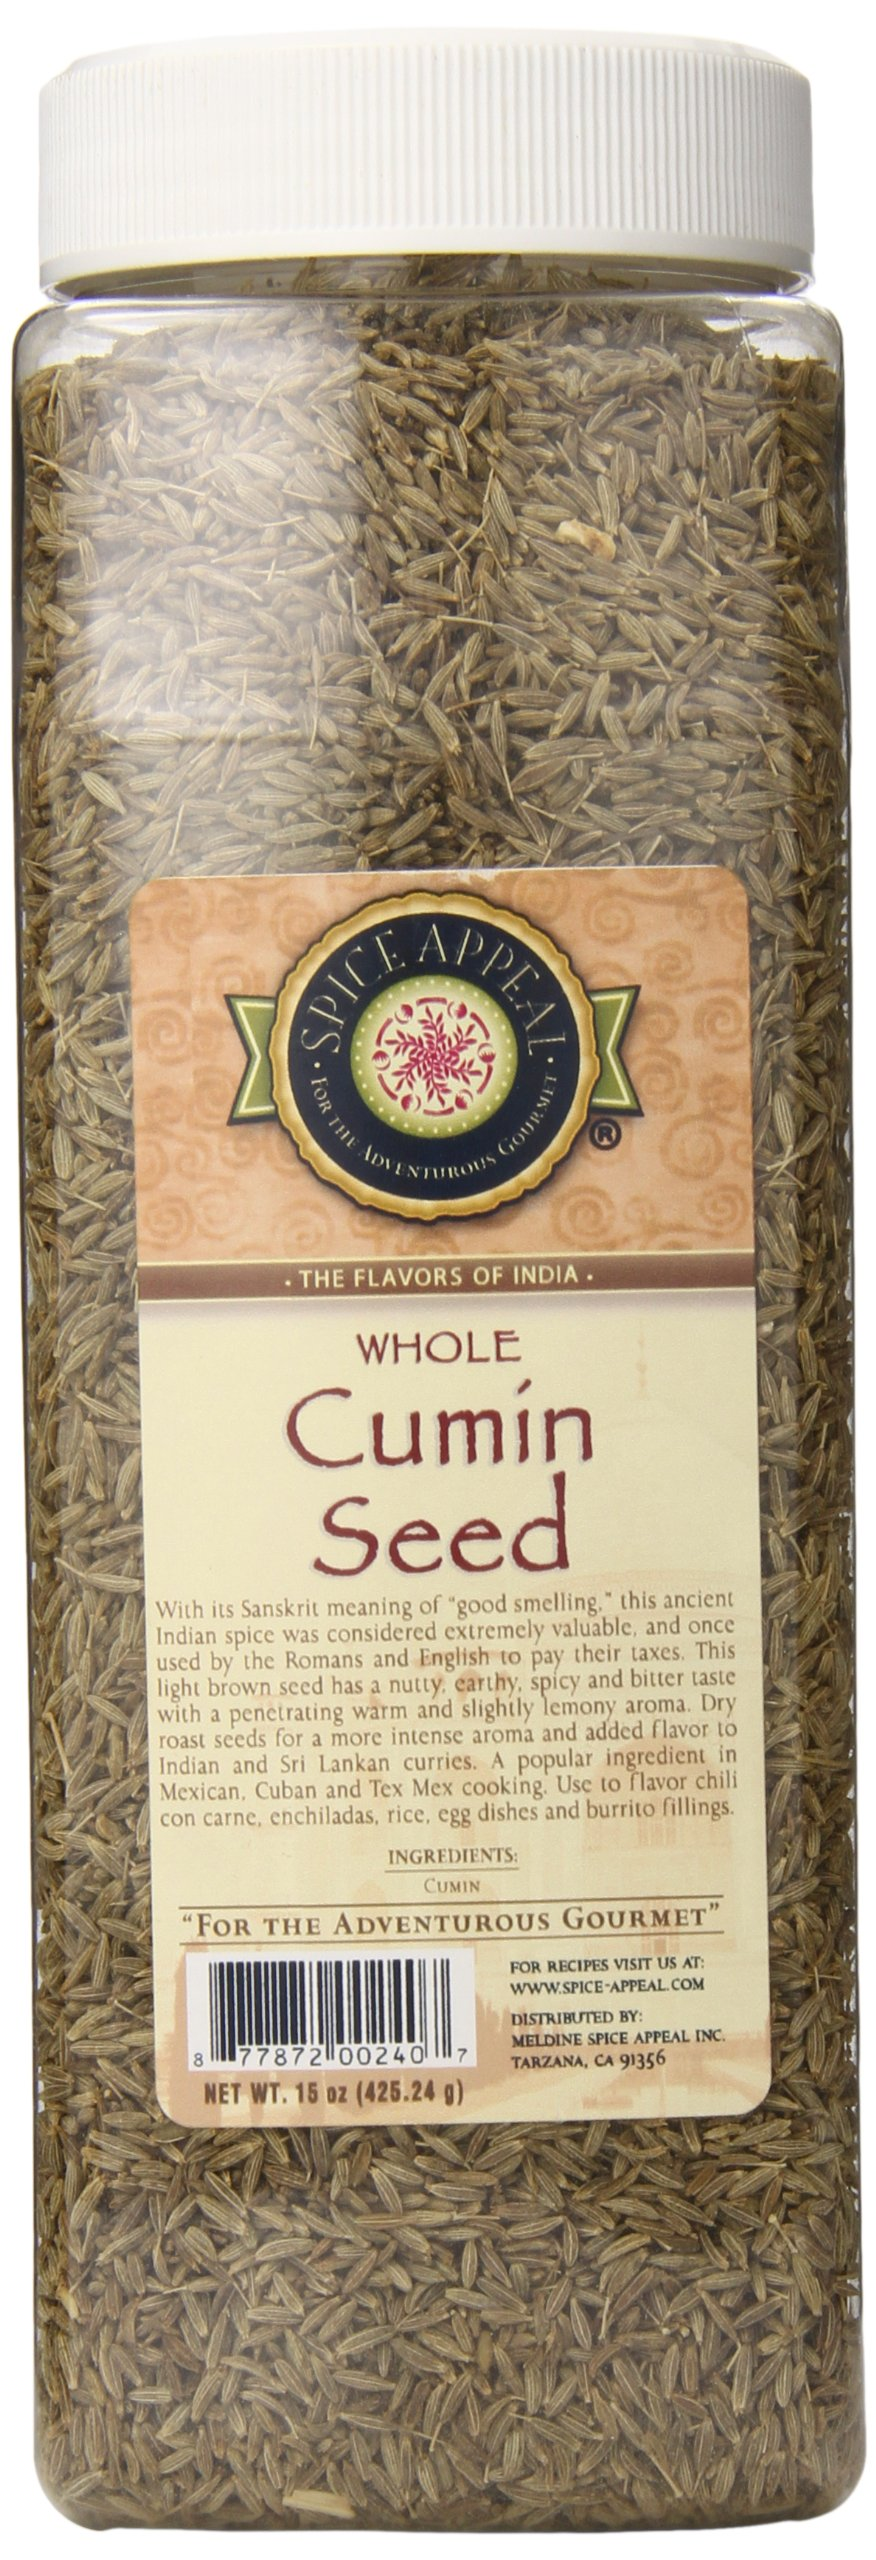 Spice Appeal Cumin Seed Whole, 15 Ounce